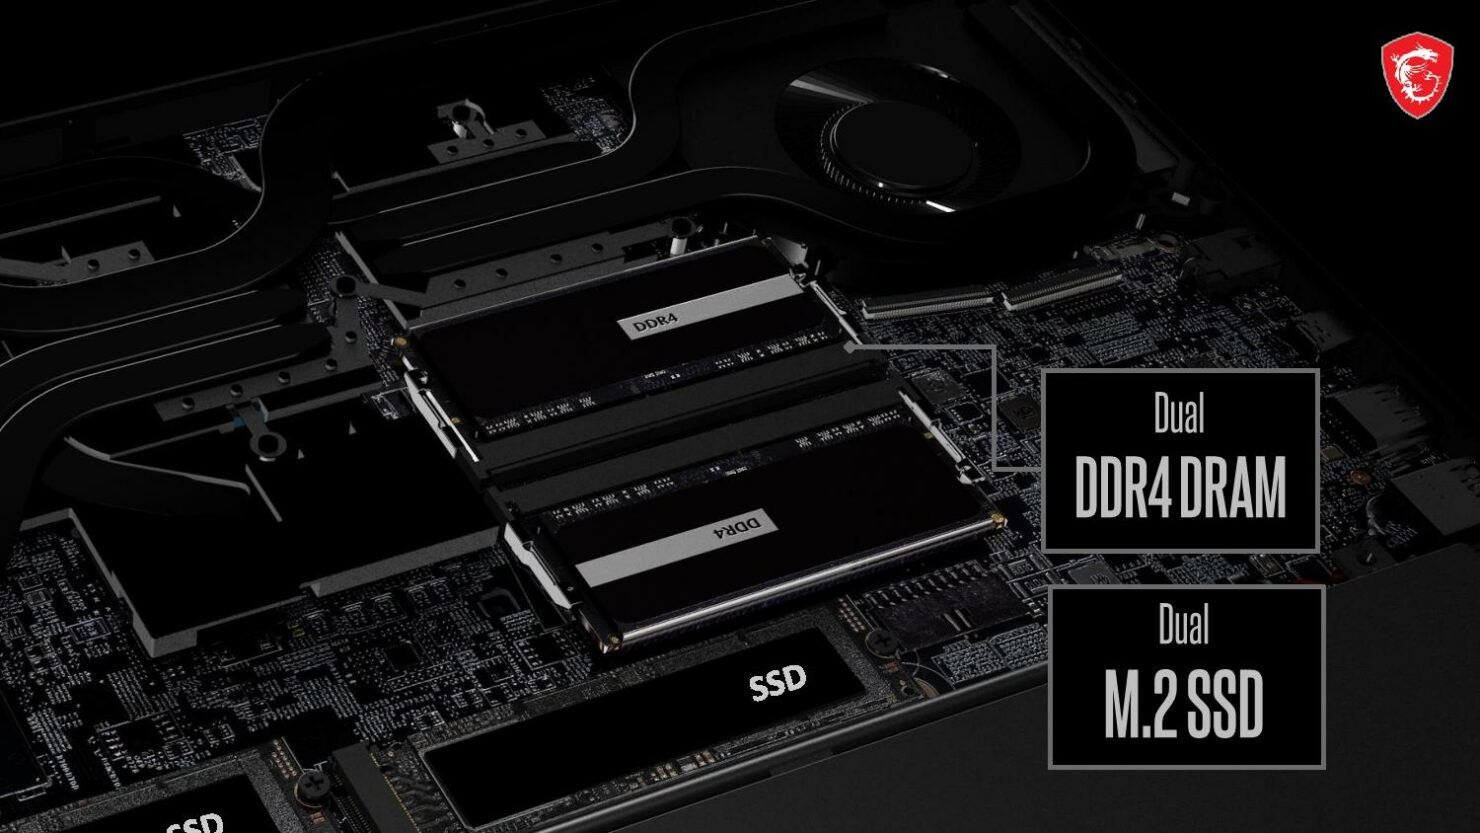 msi-gs66-stealth-product-information-page-016-2